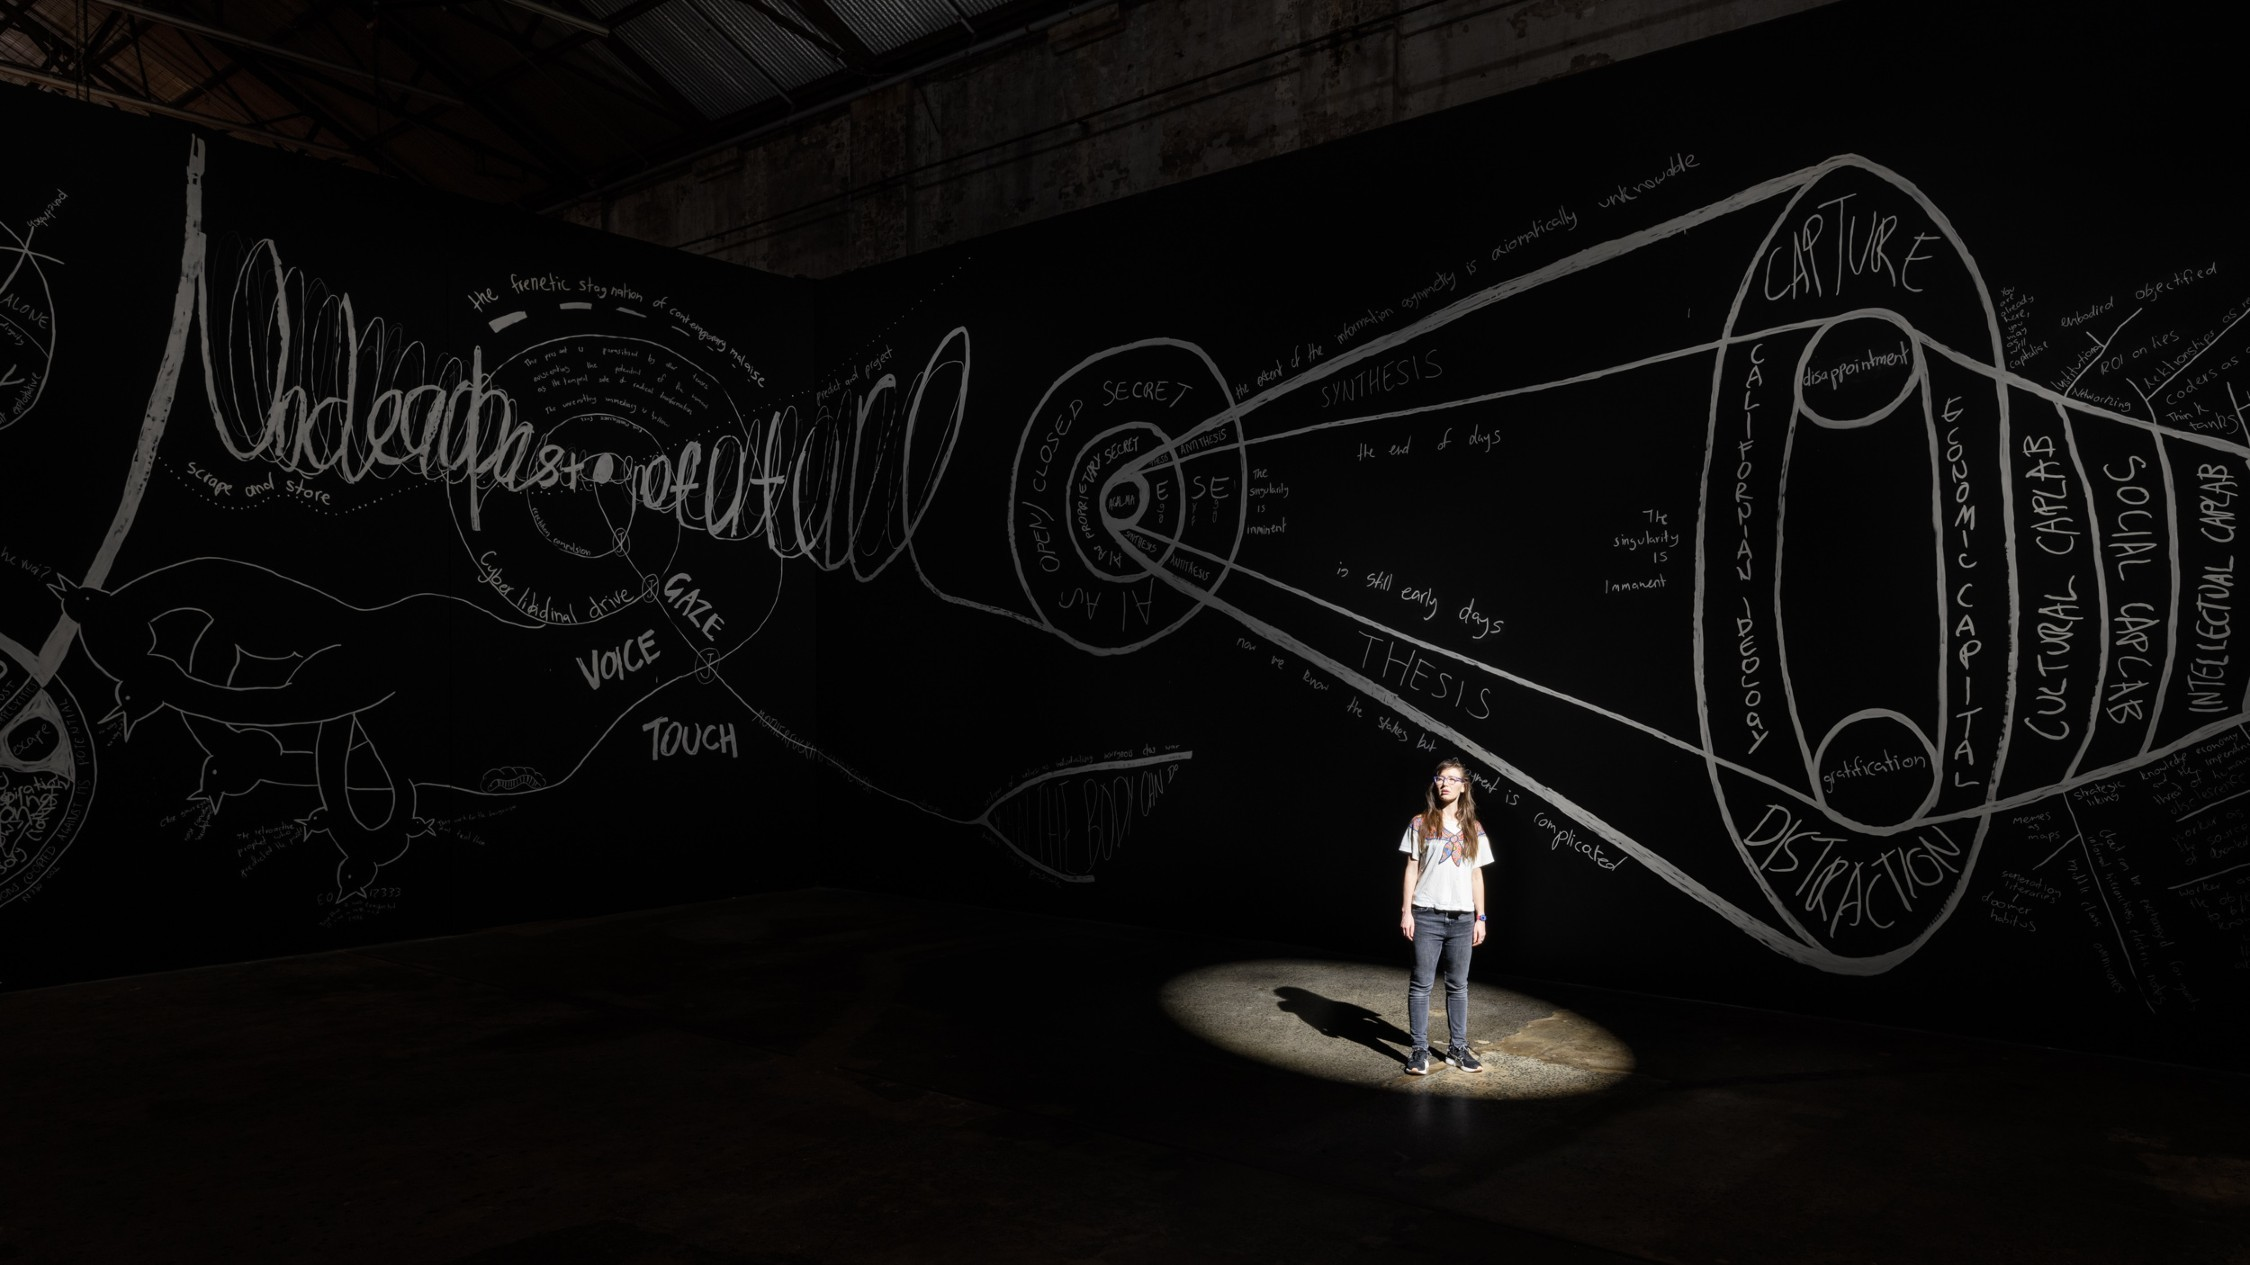 Carriageworks will officially reopen next week with a newly installed Biennale show